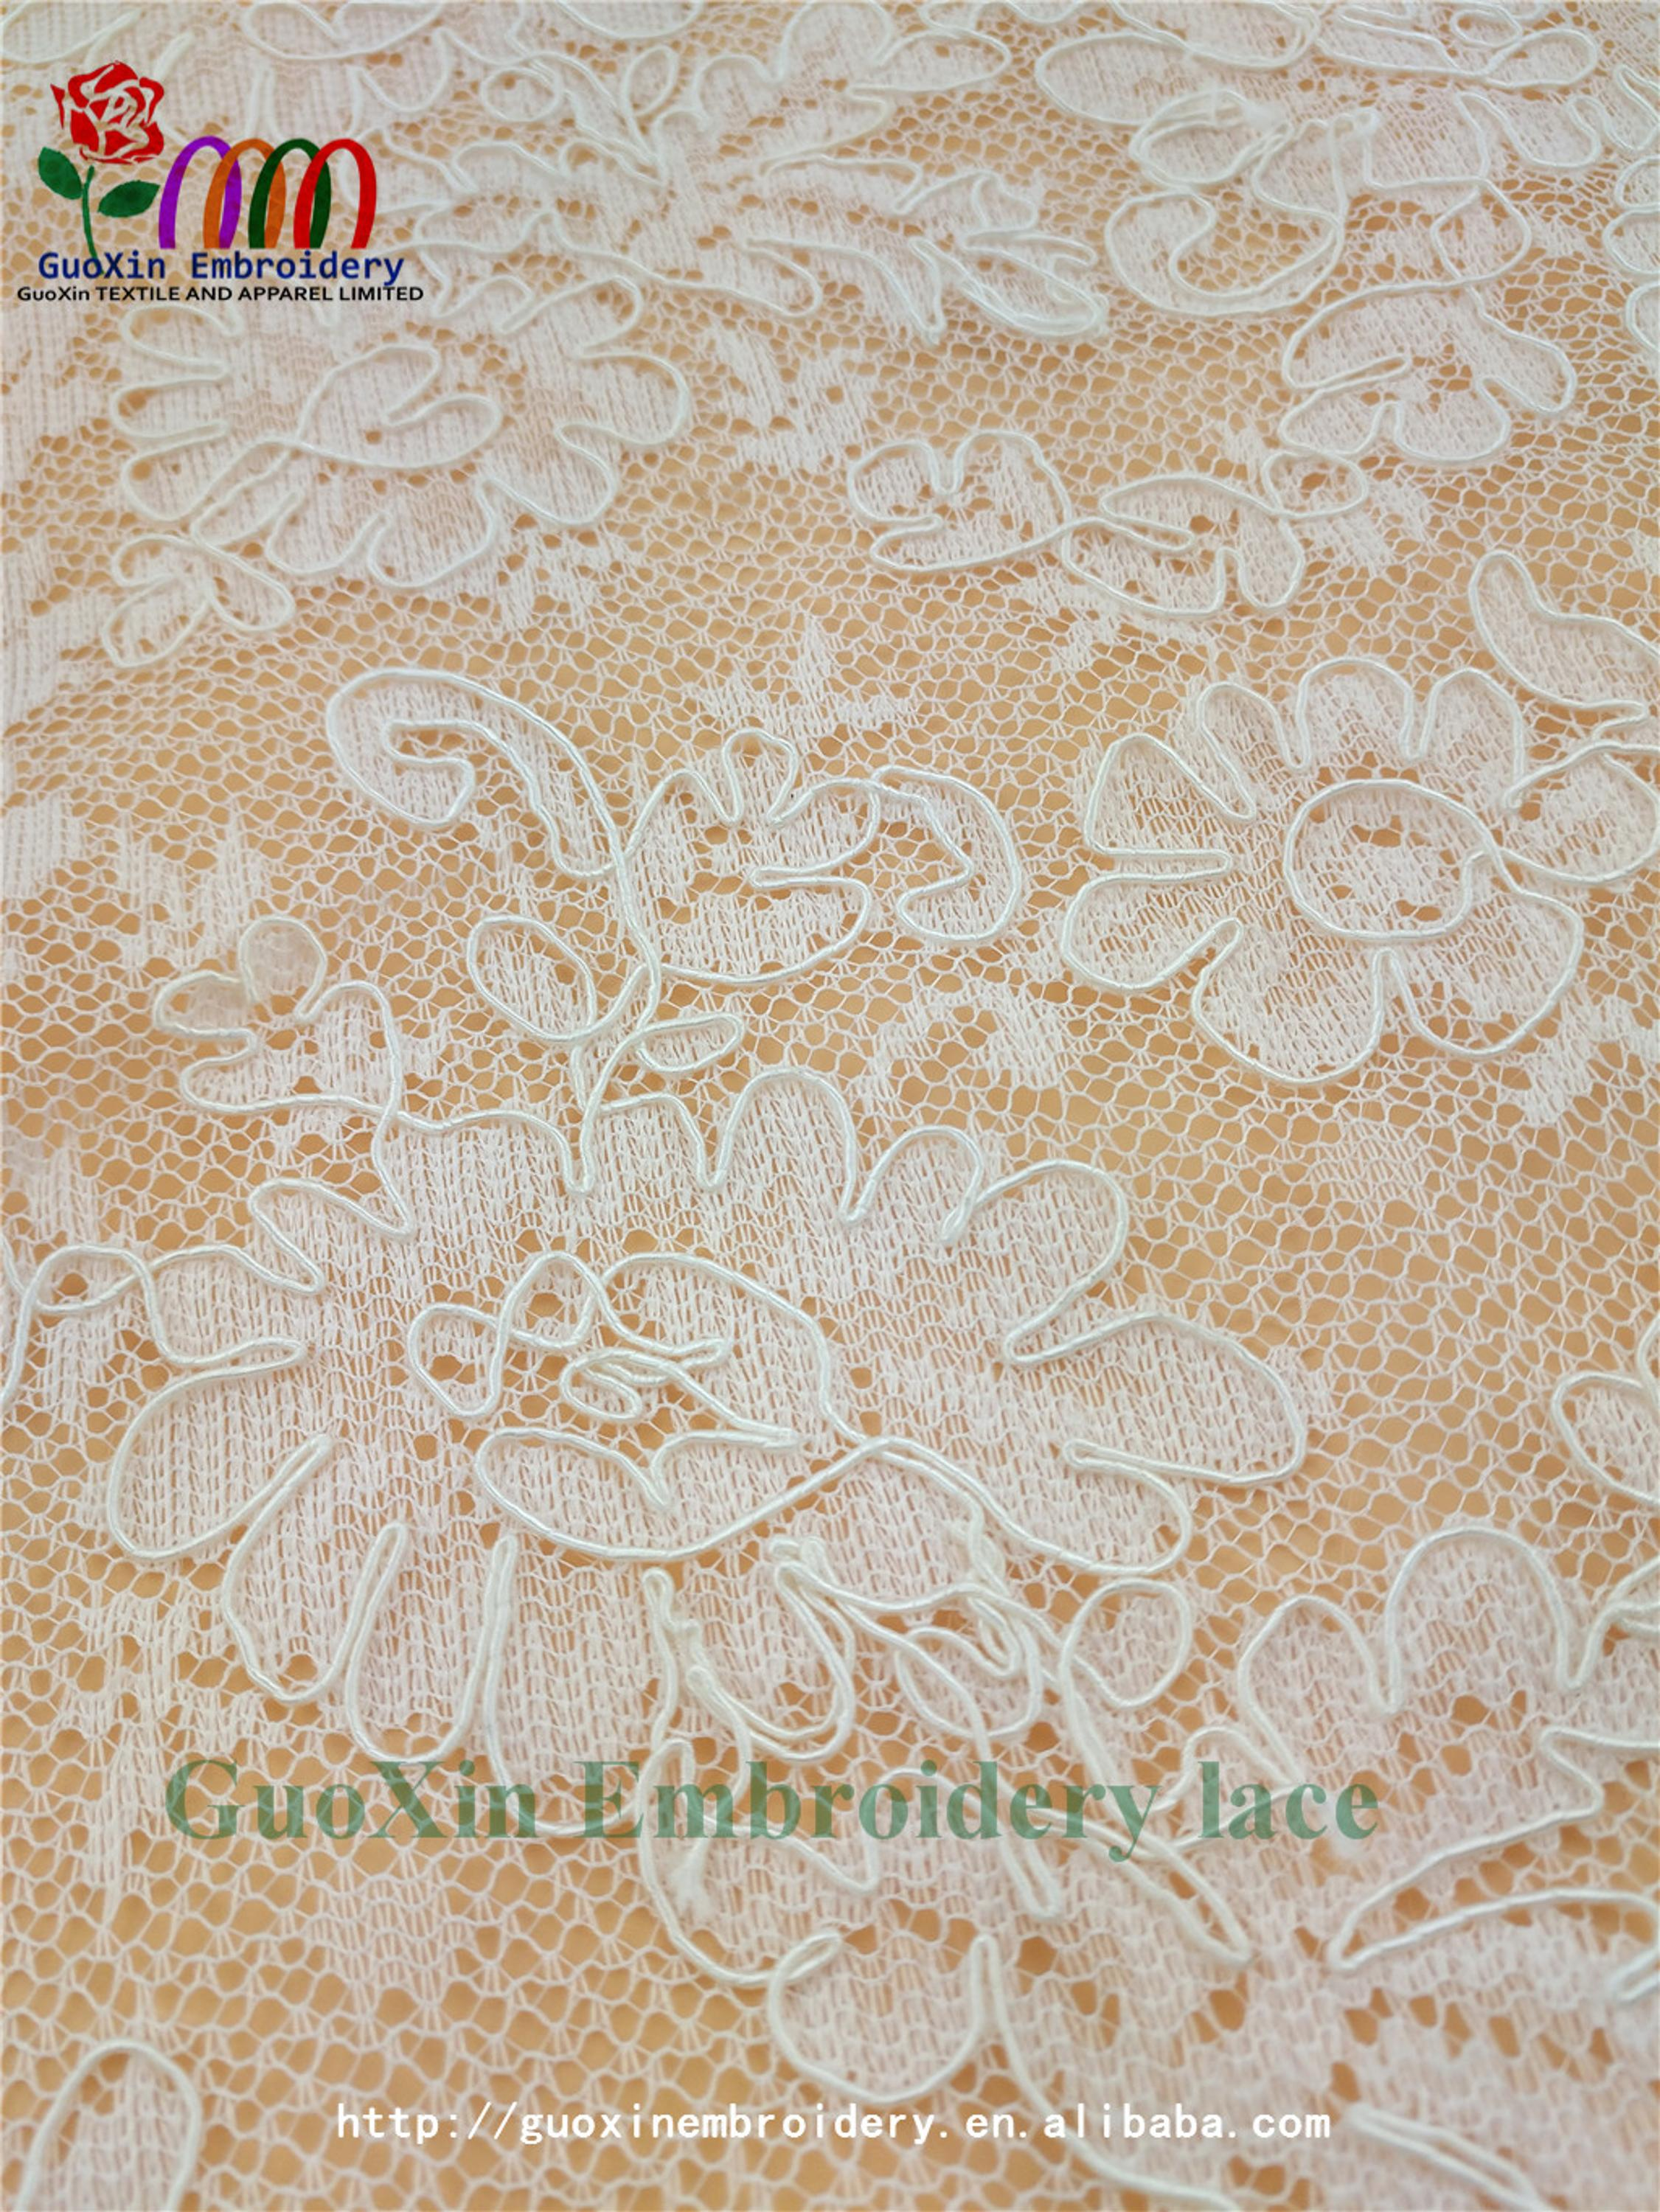 china manufacturer french lace embroidery fabric ivory bridal lace with cording